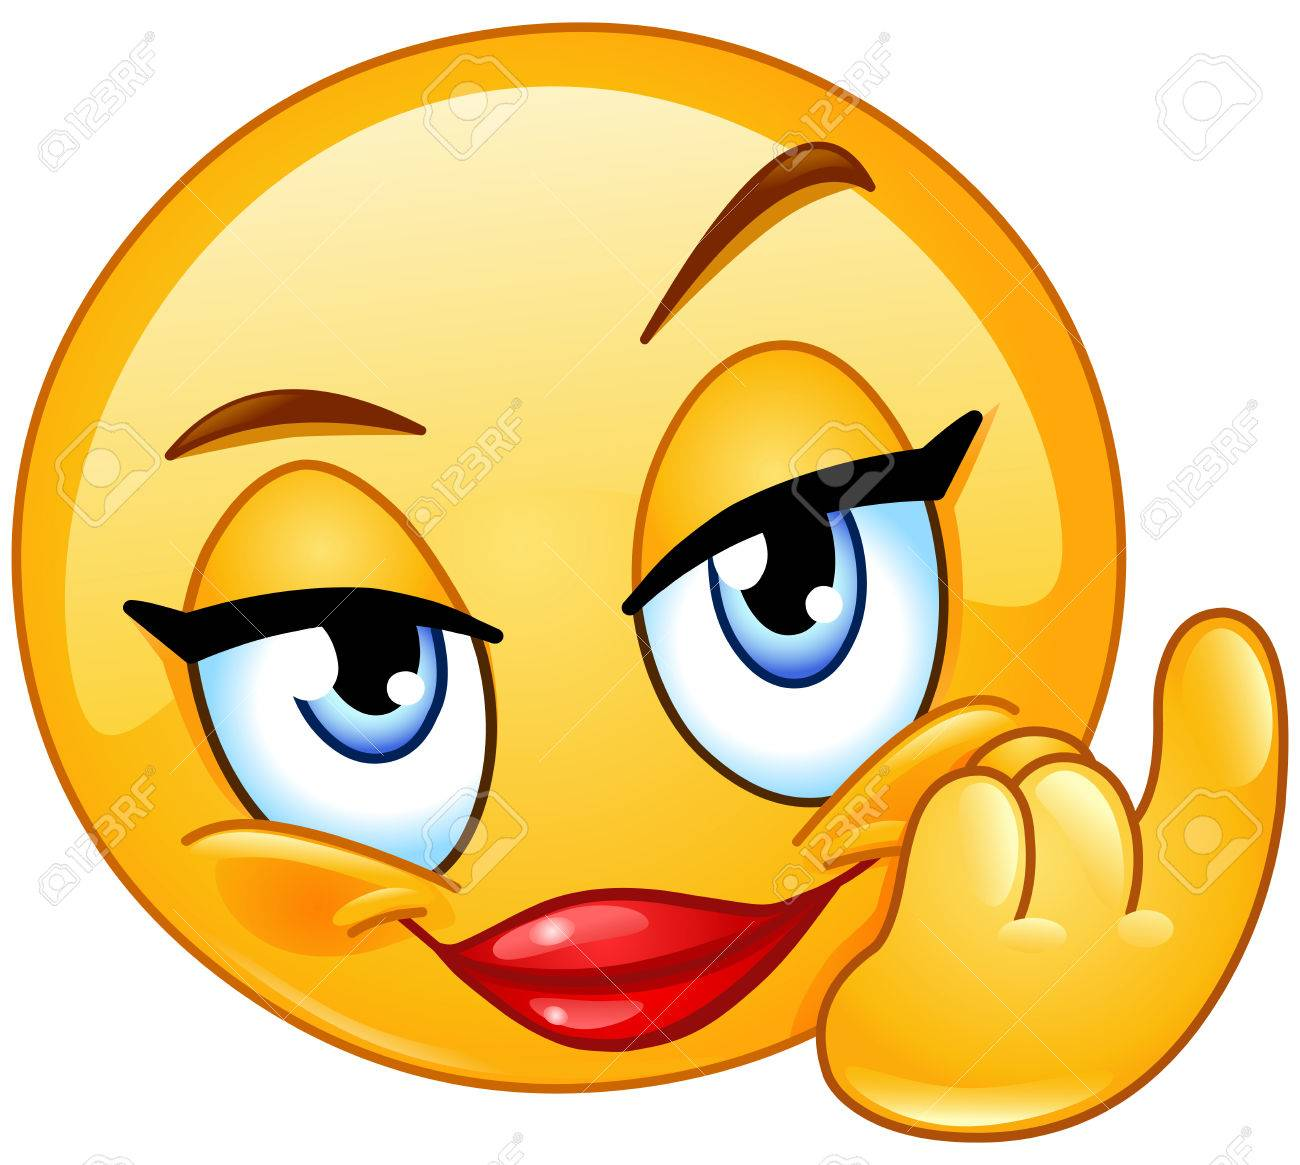 Female emoticon showing beckoning or come here hand gesture.